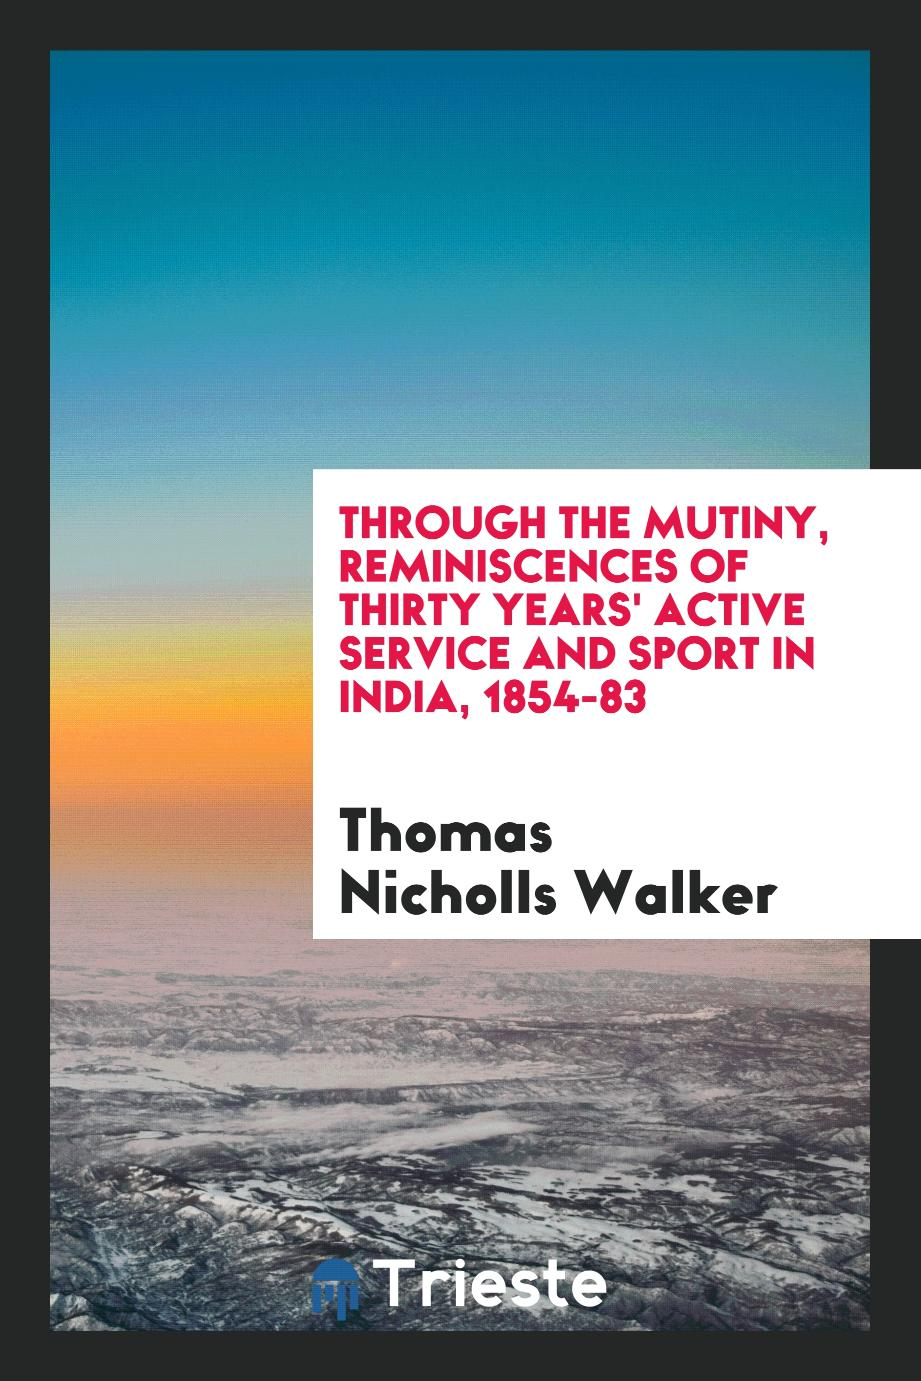 Through the mutiny, reminiscences of thirty years' active service and sport in India, 1854-83